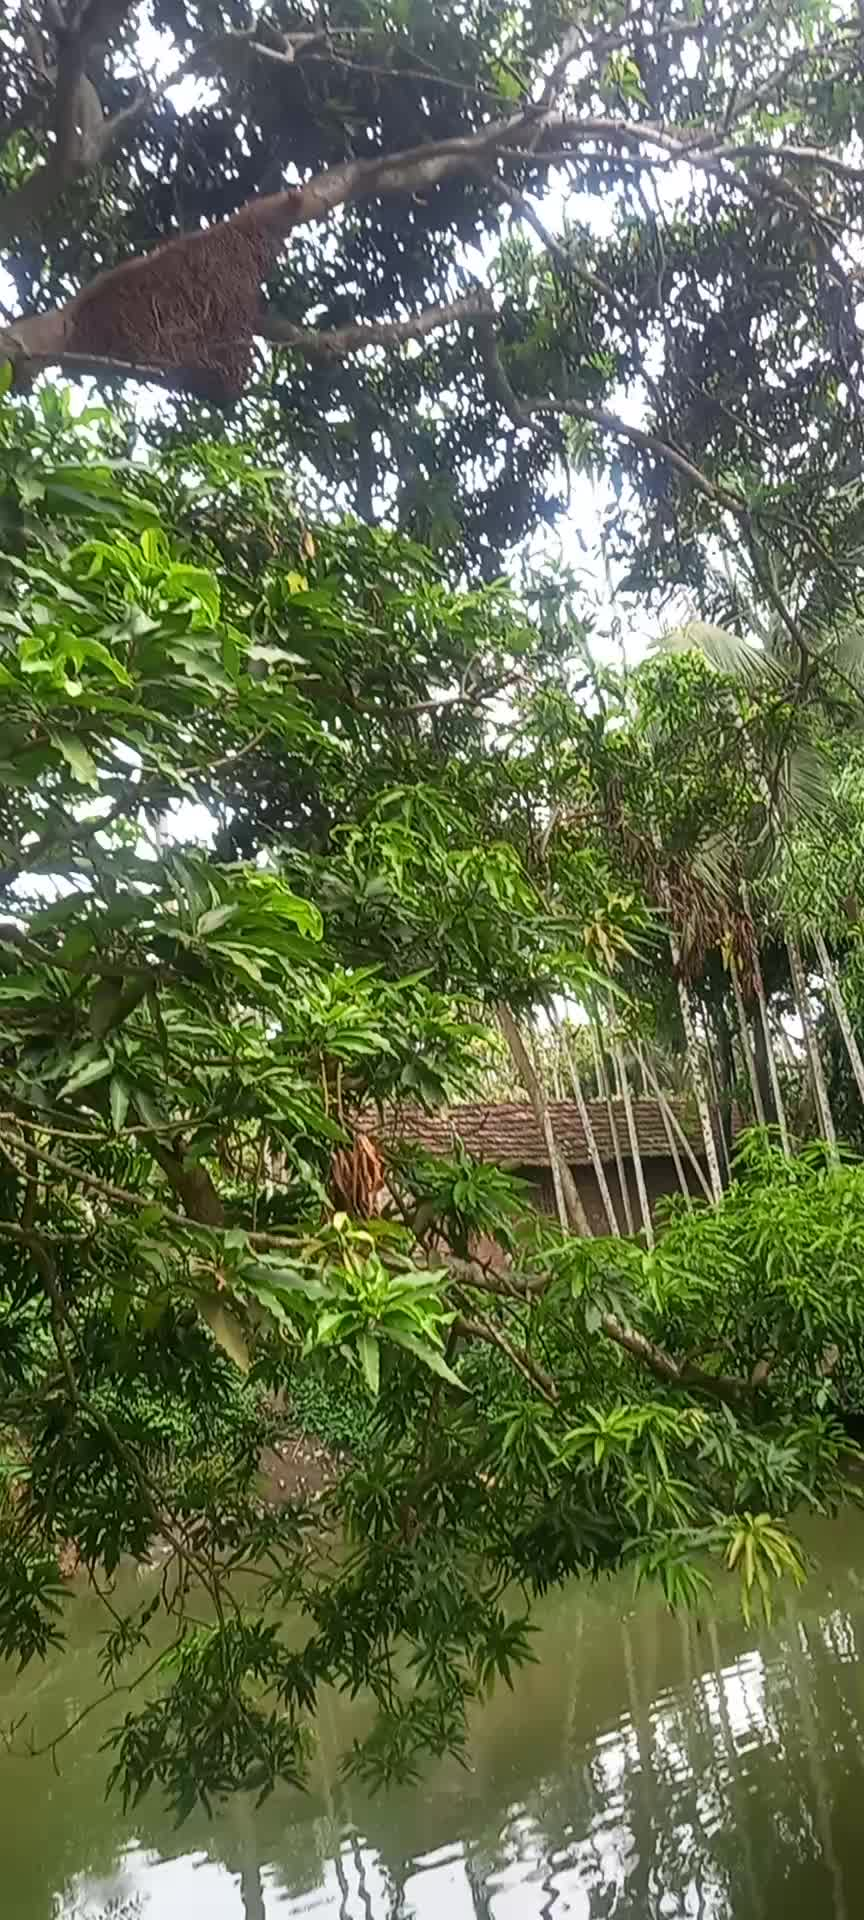 This video shows you a beautiful view of the village with a mango tree and some surroundings and a bee hive in the mango tree.